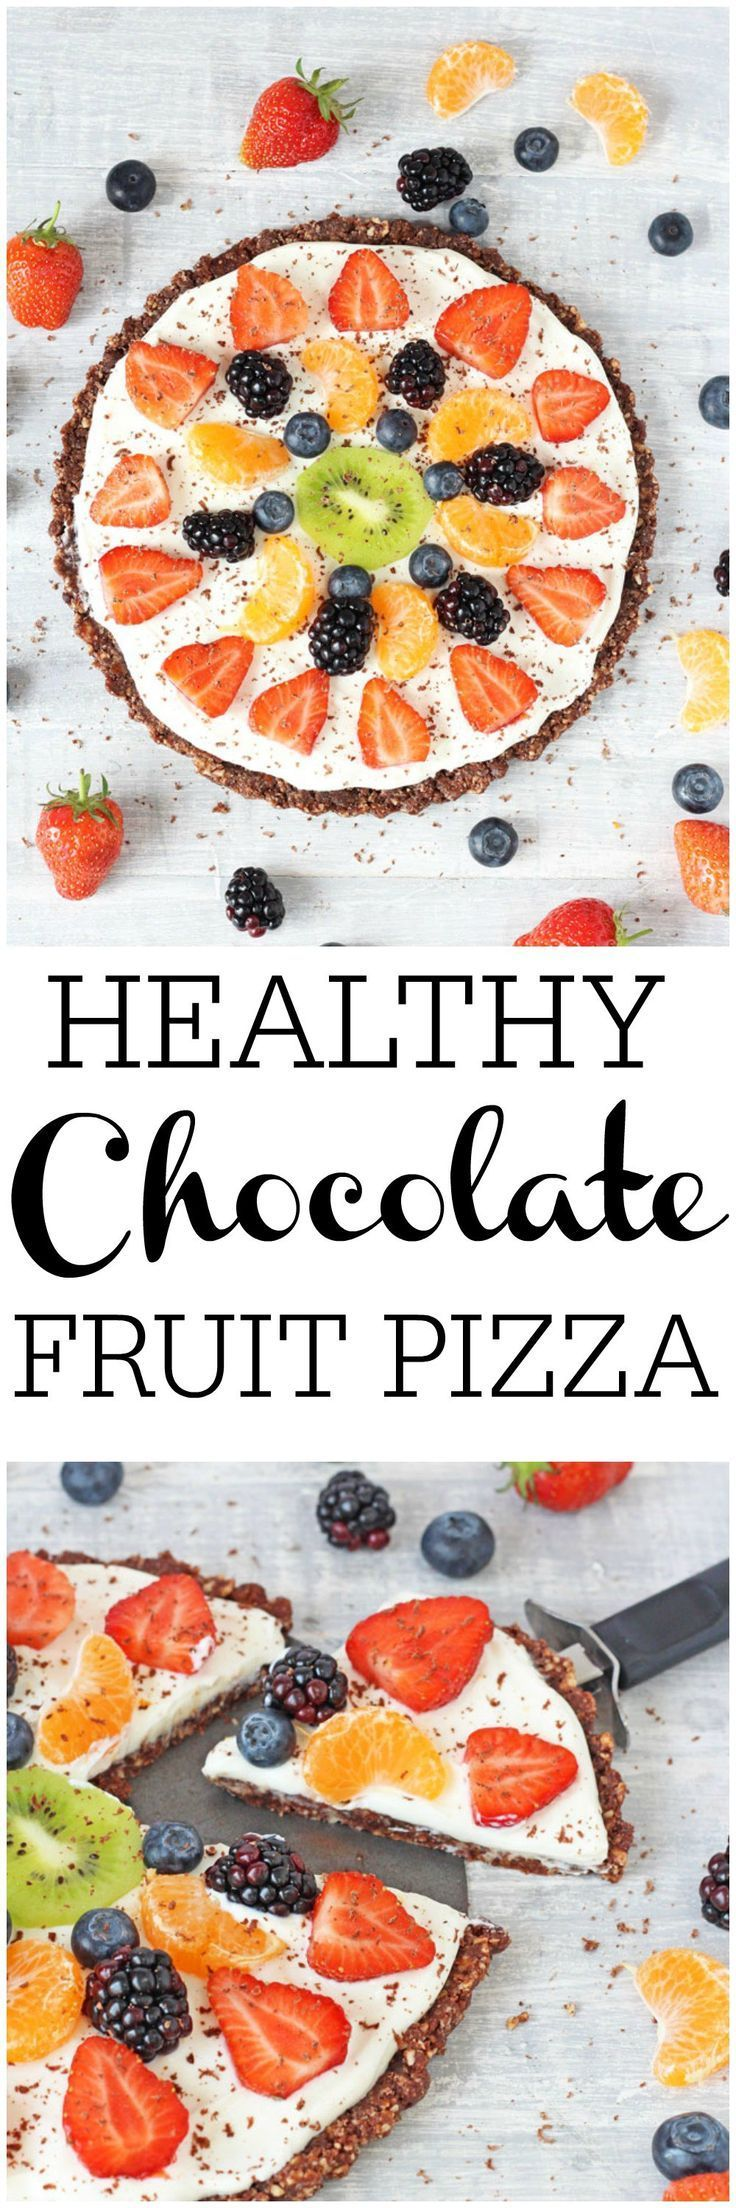 Looking for a delicious and healthy dessert that the whole family can enjoy? Try my gluten free, no bake Chocolate Fruit Pizza! | My Fussy Eater blog